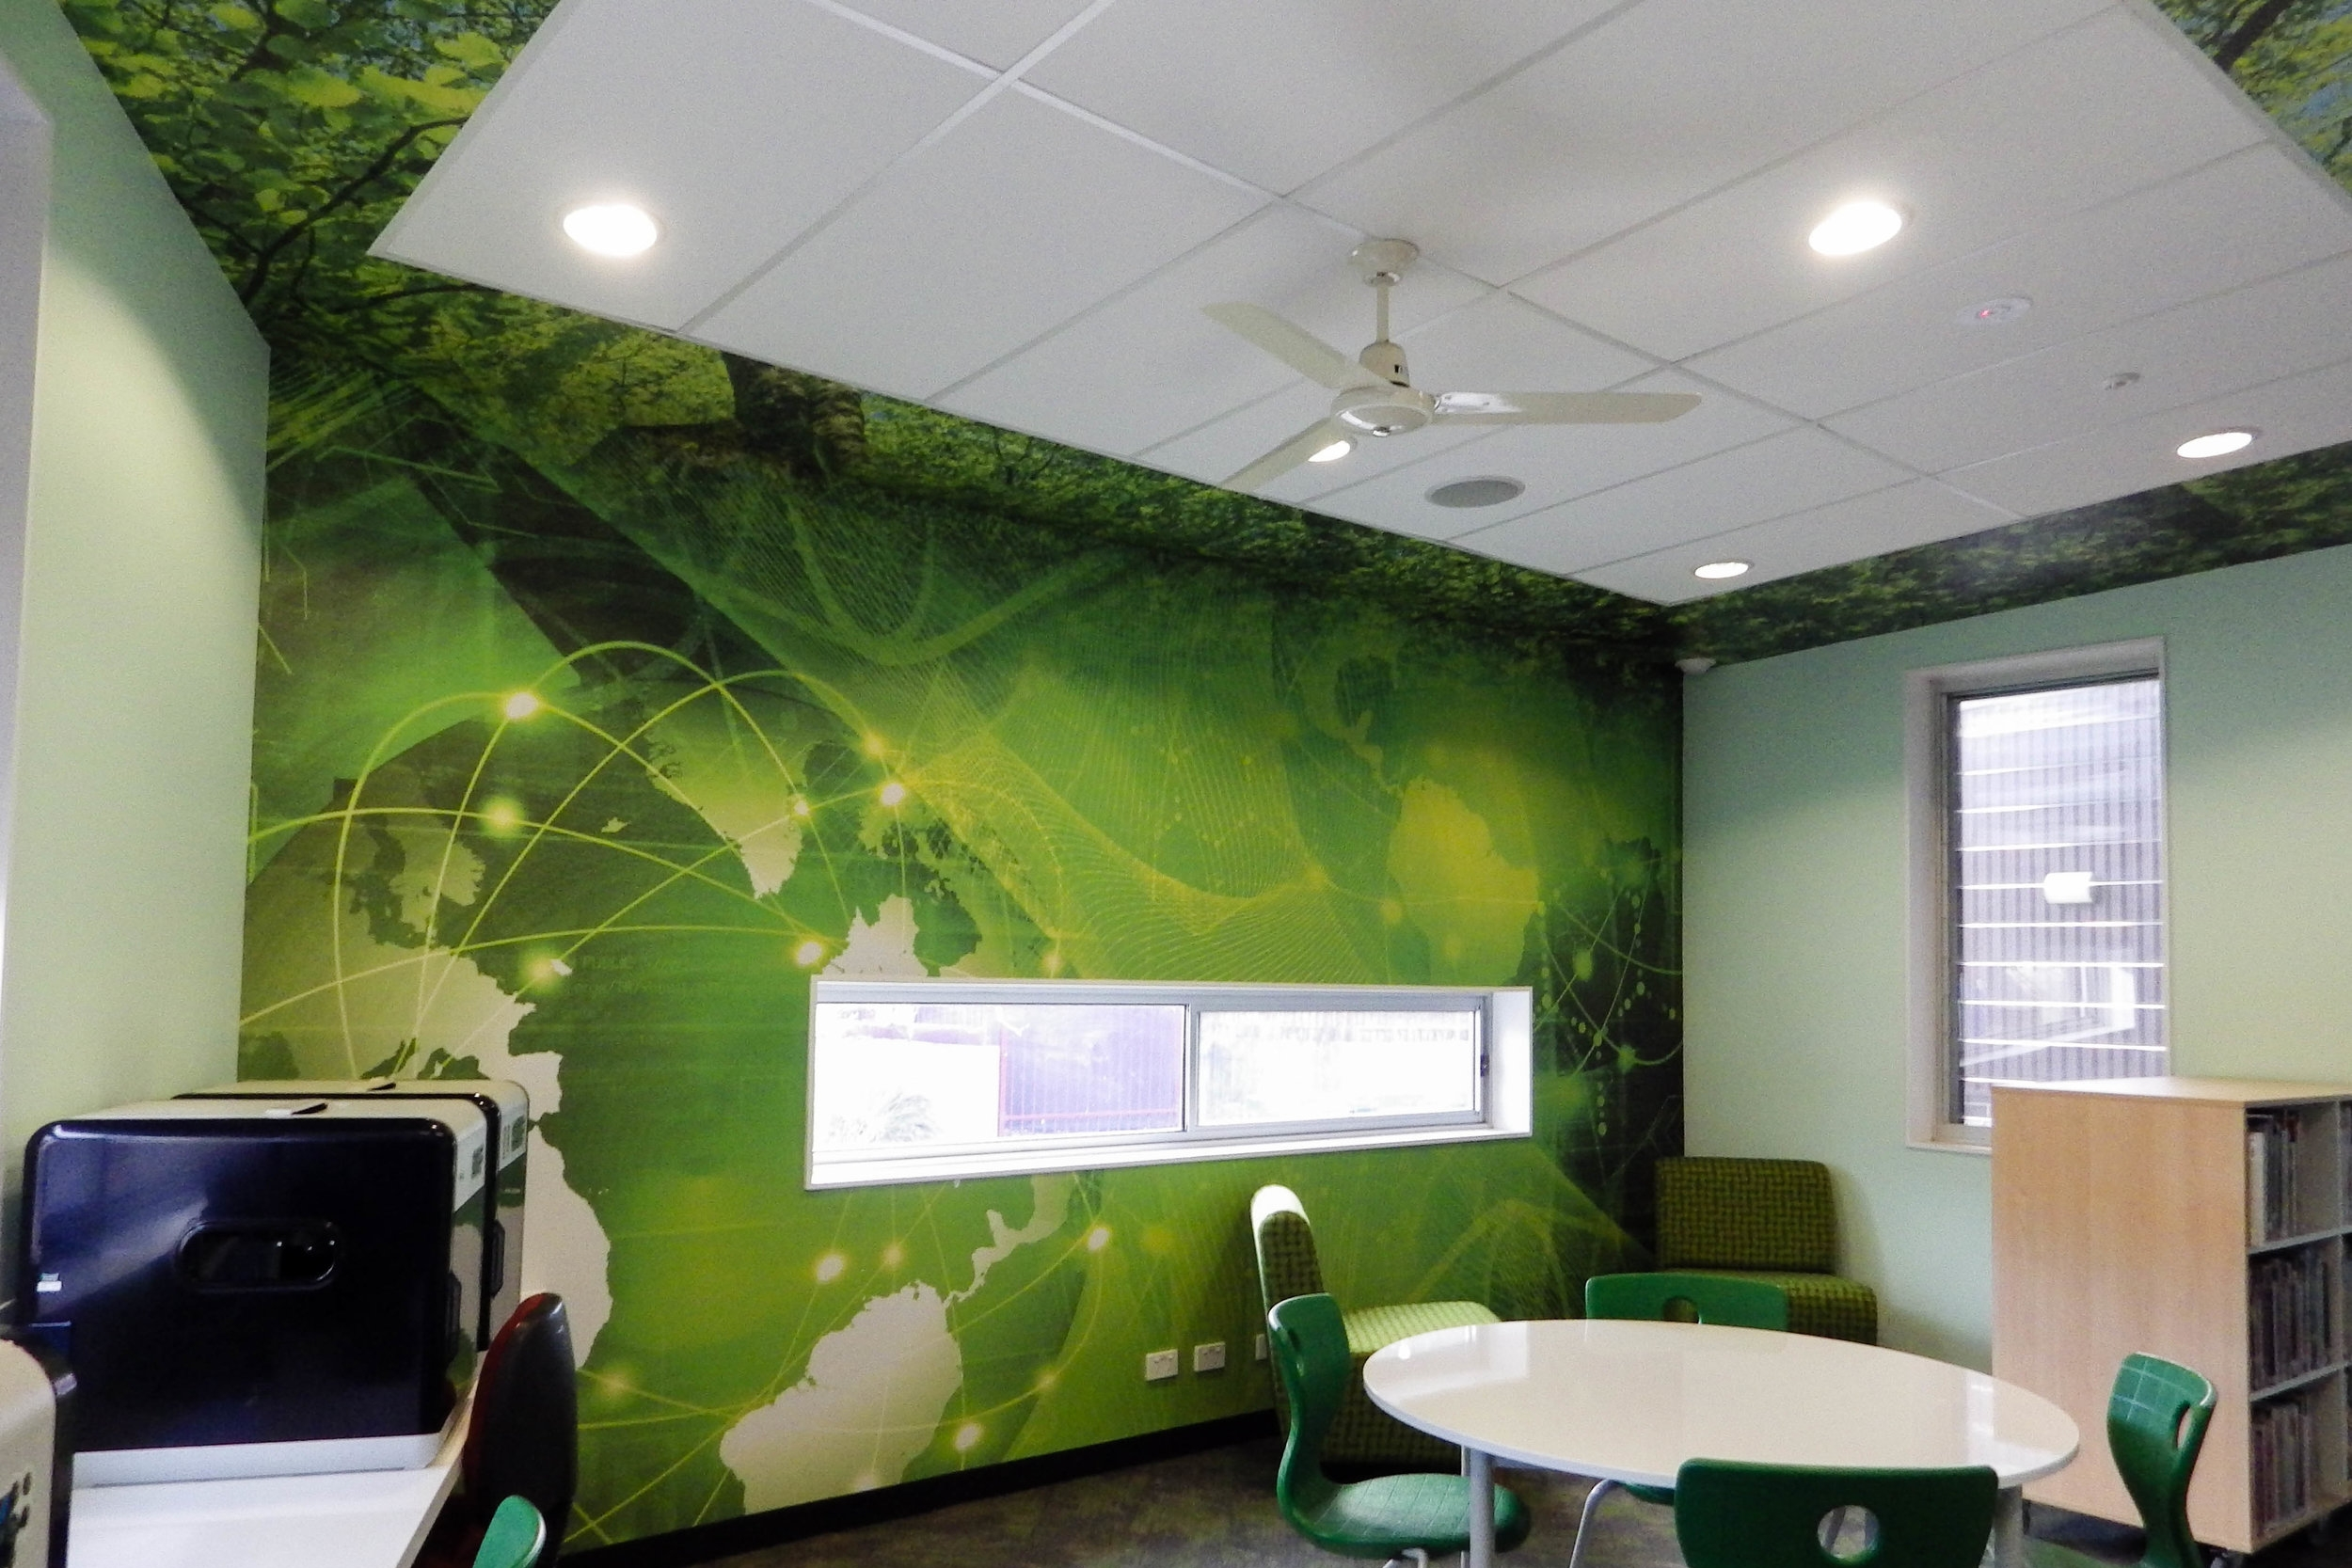 CEILING GRAPHICS